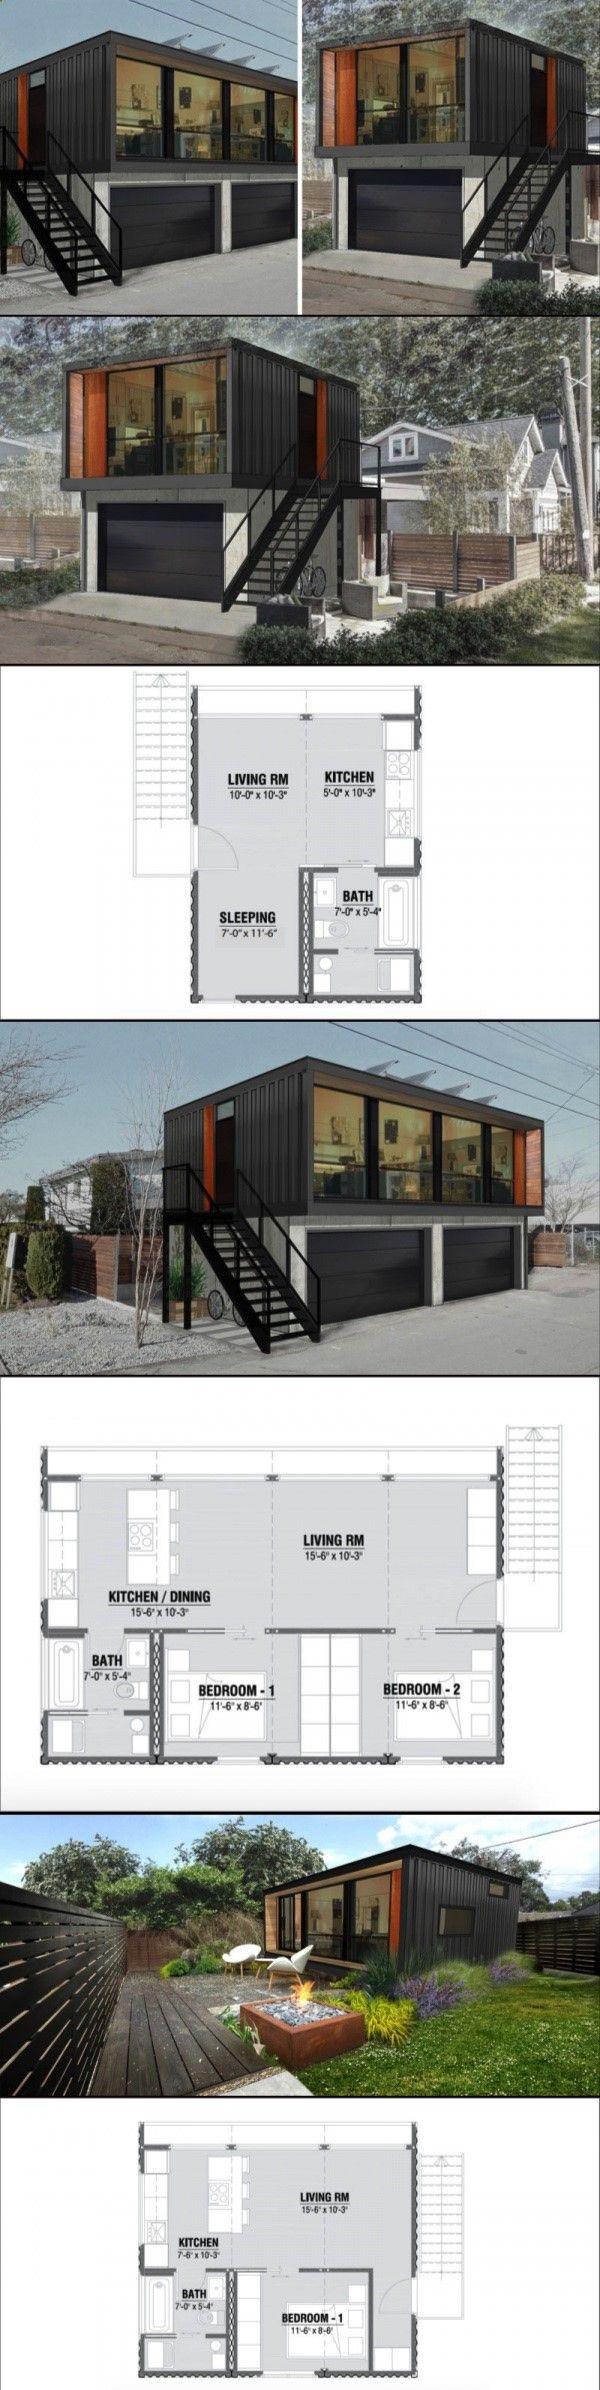 Container House - It's getting easier to fulfill your dreams of living in a shipping container above a garage - Who Else Wants Simple Step-By-Step Plans To Design And Build A Container Home From Scratch?